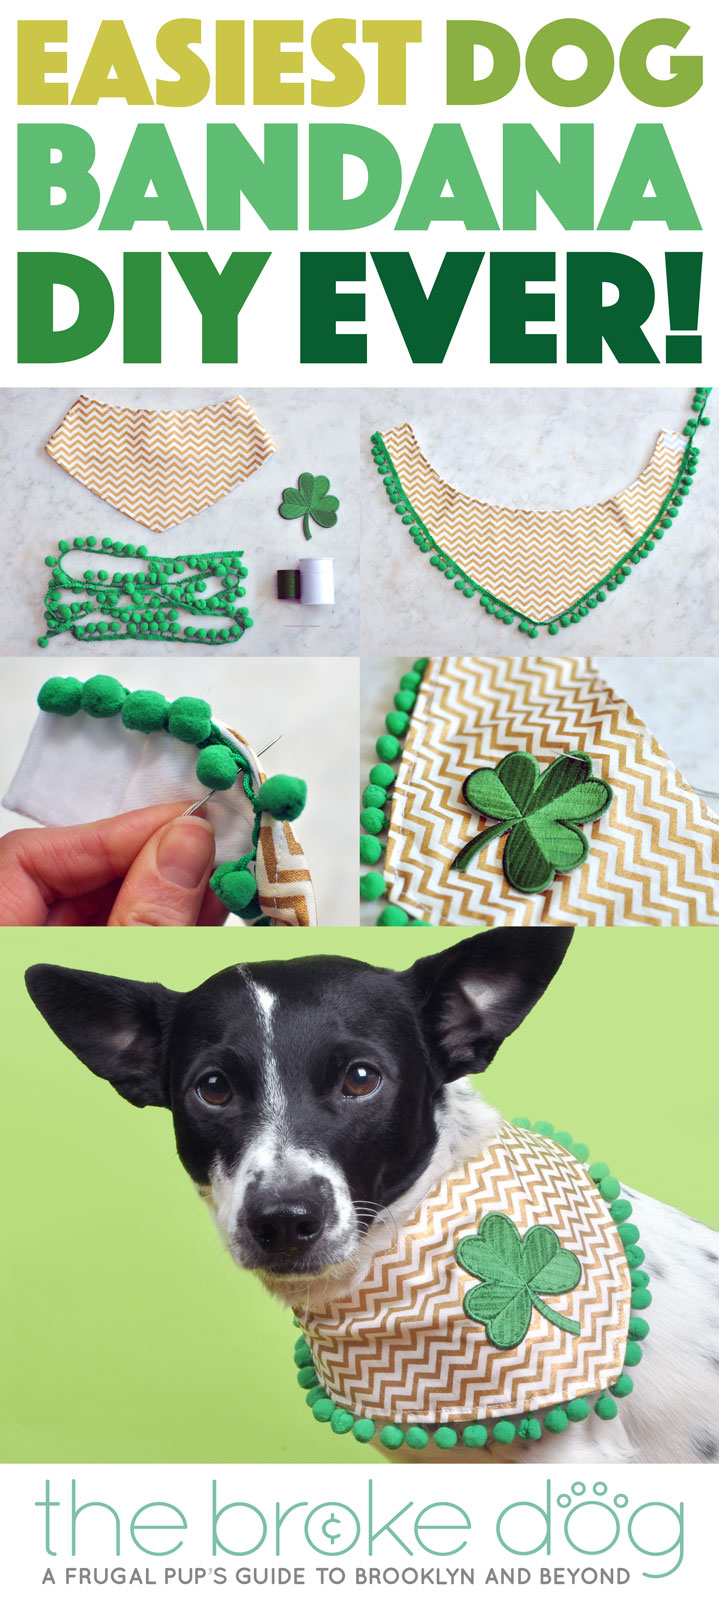 This dog bandana may look fancy, but I promise you that this DIY tutorial is probably the easiest dog bandana DIY you'll find! You don't even have to sew if you don't want to! All you need is a few simple materials and a little creativity to make your pup stand out at any event or for any holiday.